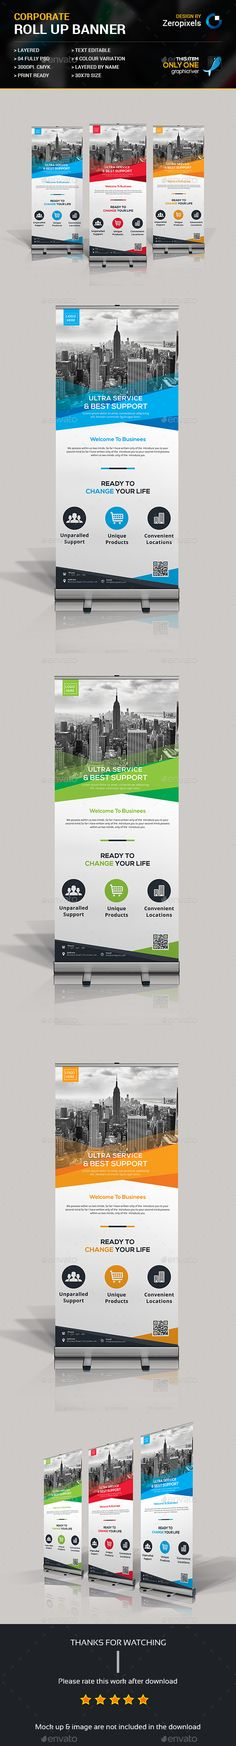 Buy Corporate Business Roll Up Banner by zeropixels on GraphicRiver. FEATURES: Easy Customizable and Editable Roll Up Banner in with bleed CMYK Color Design in 300 DPI Resolution. Pull Up Banner Design, Roll Up Design, Web Design, Page Design, Modern Design, Graphic Design, Corporate Business, Corporate Design, Business Postcards